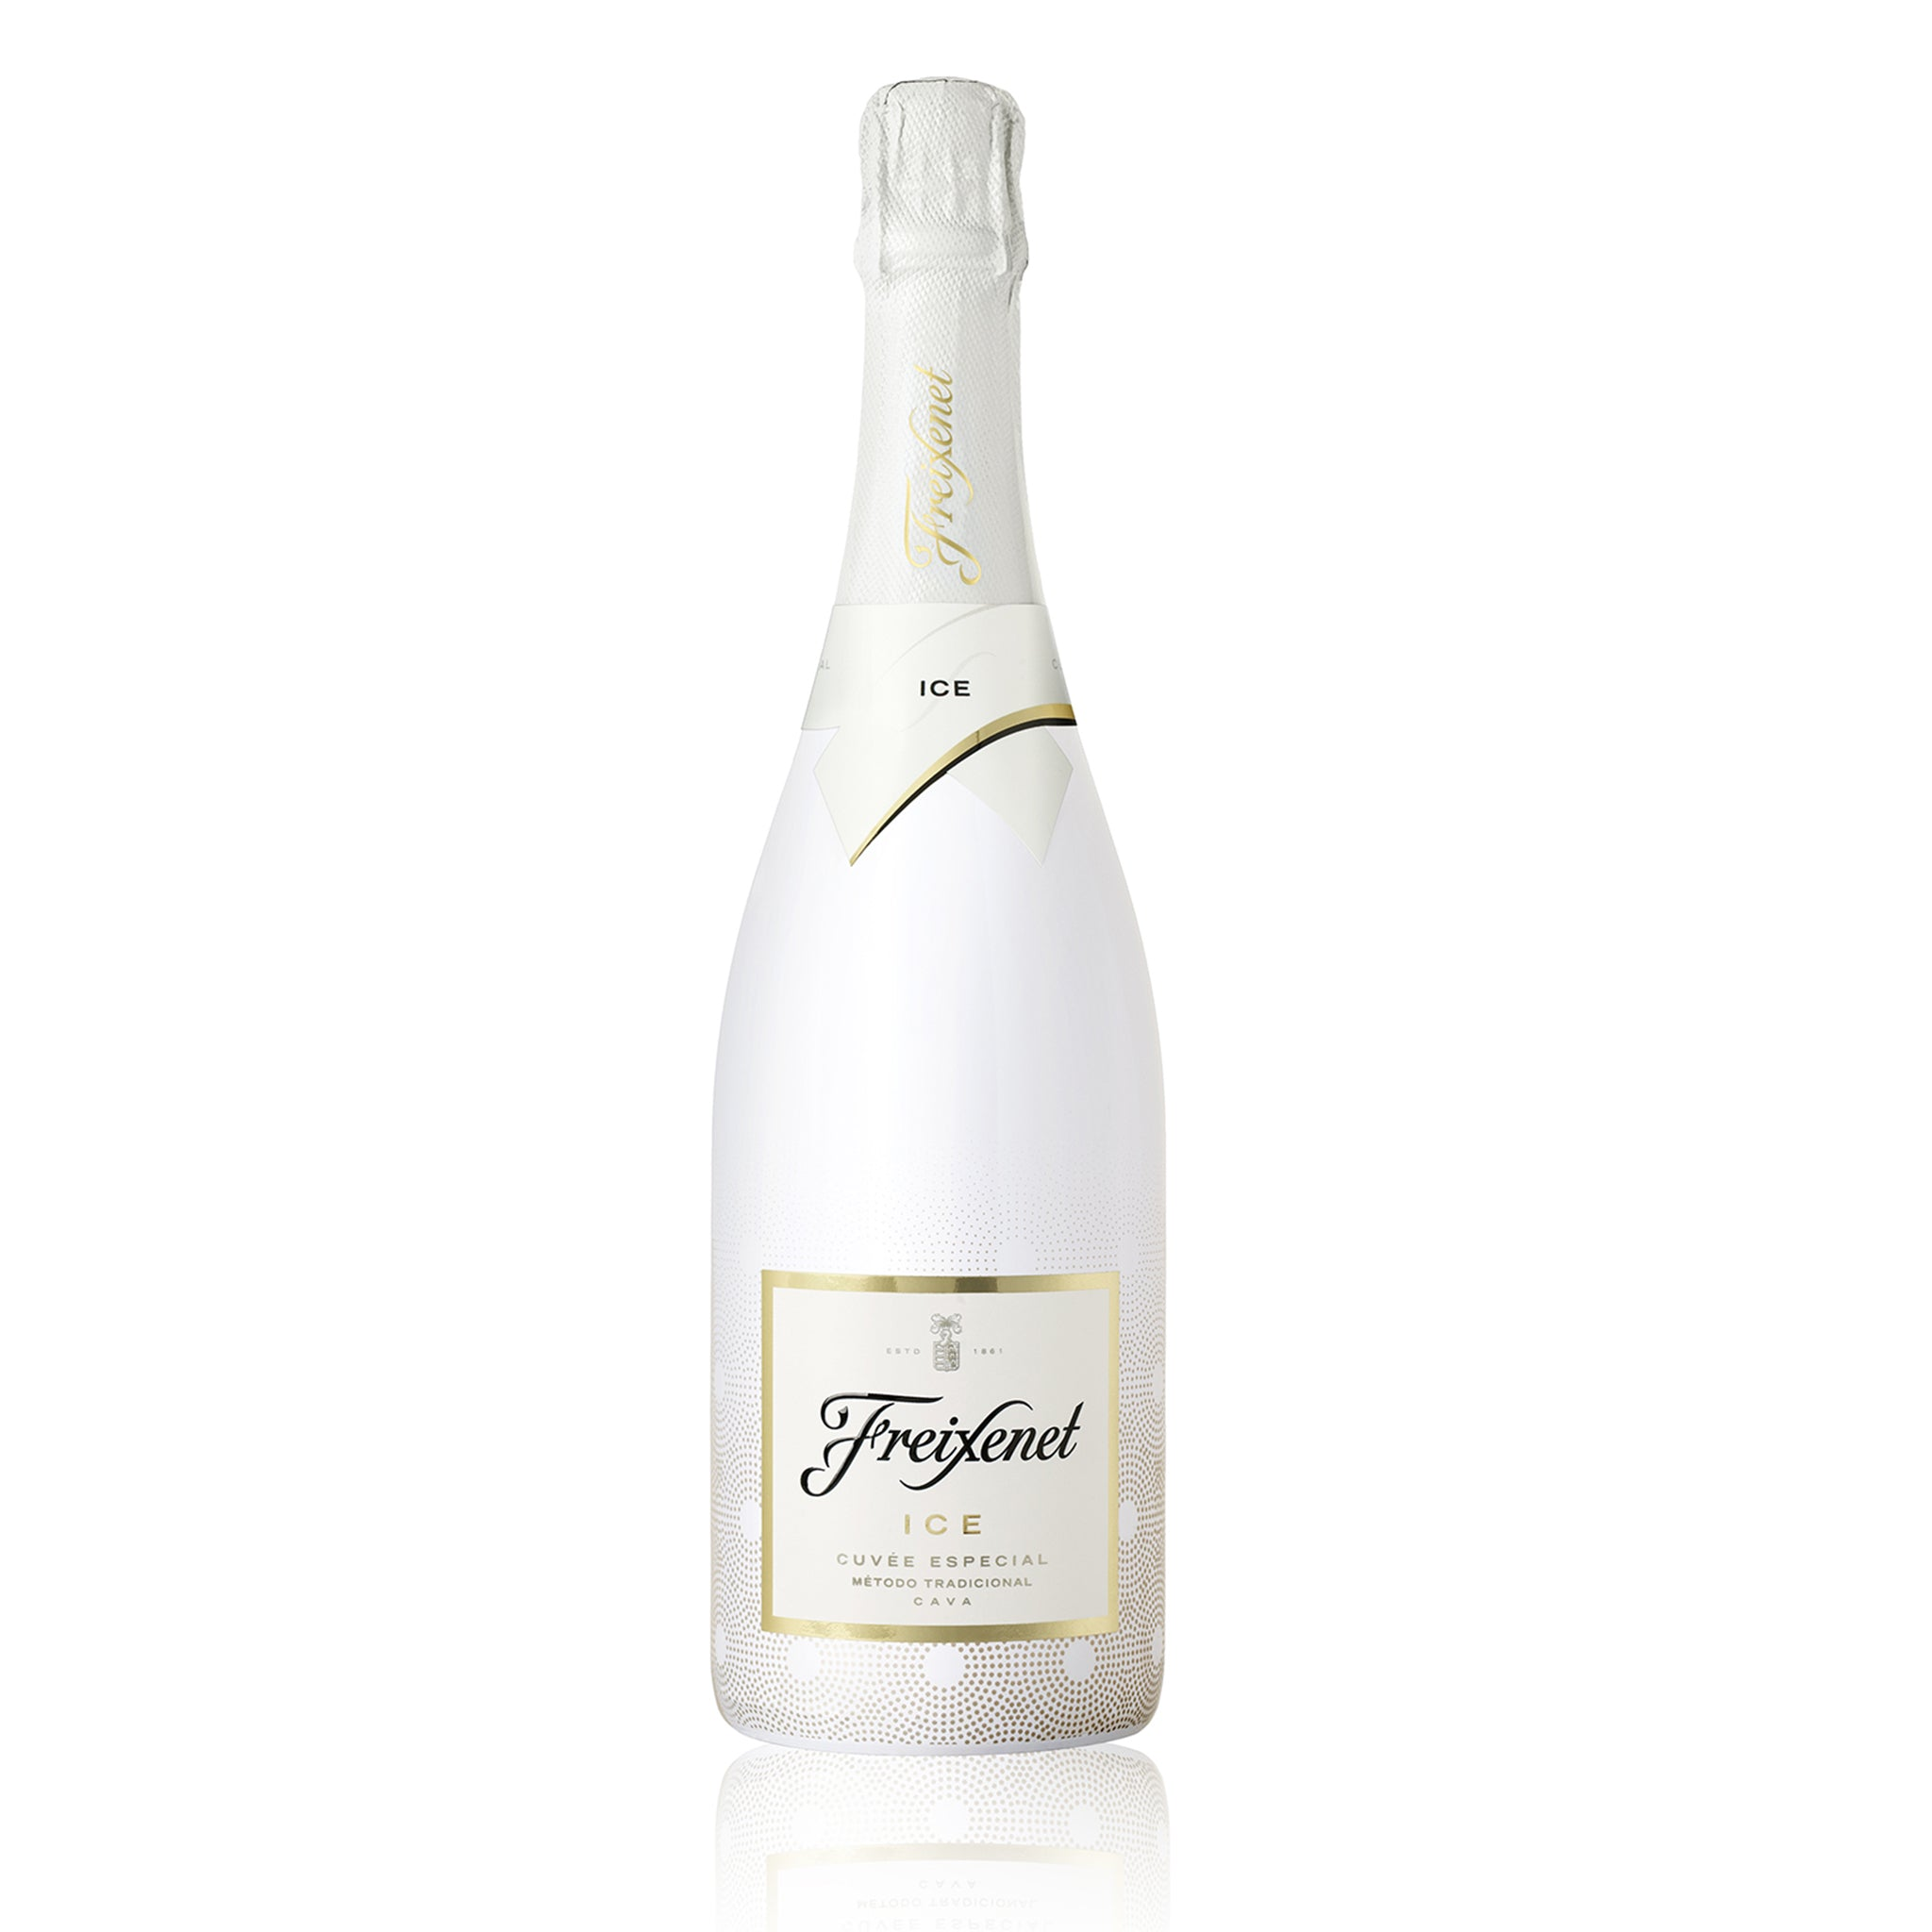 ESPUMANTE FREIXENET ICE x 750ML